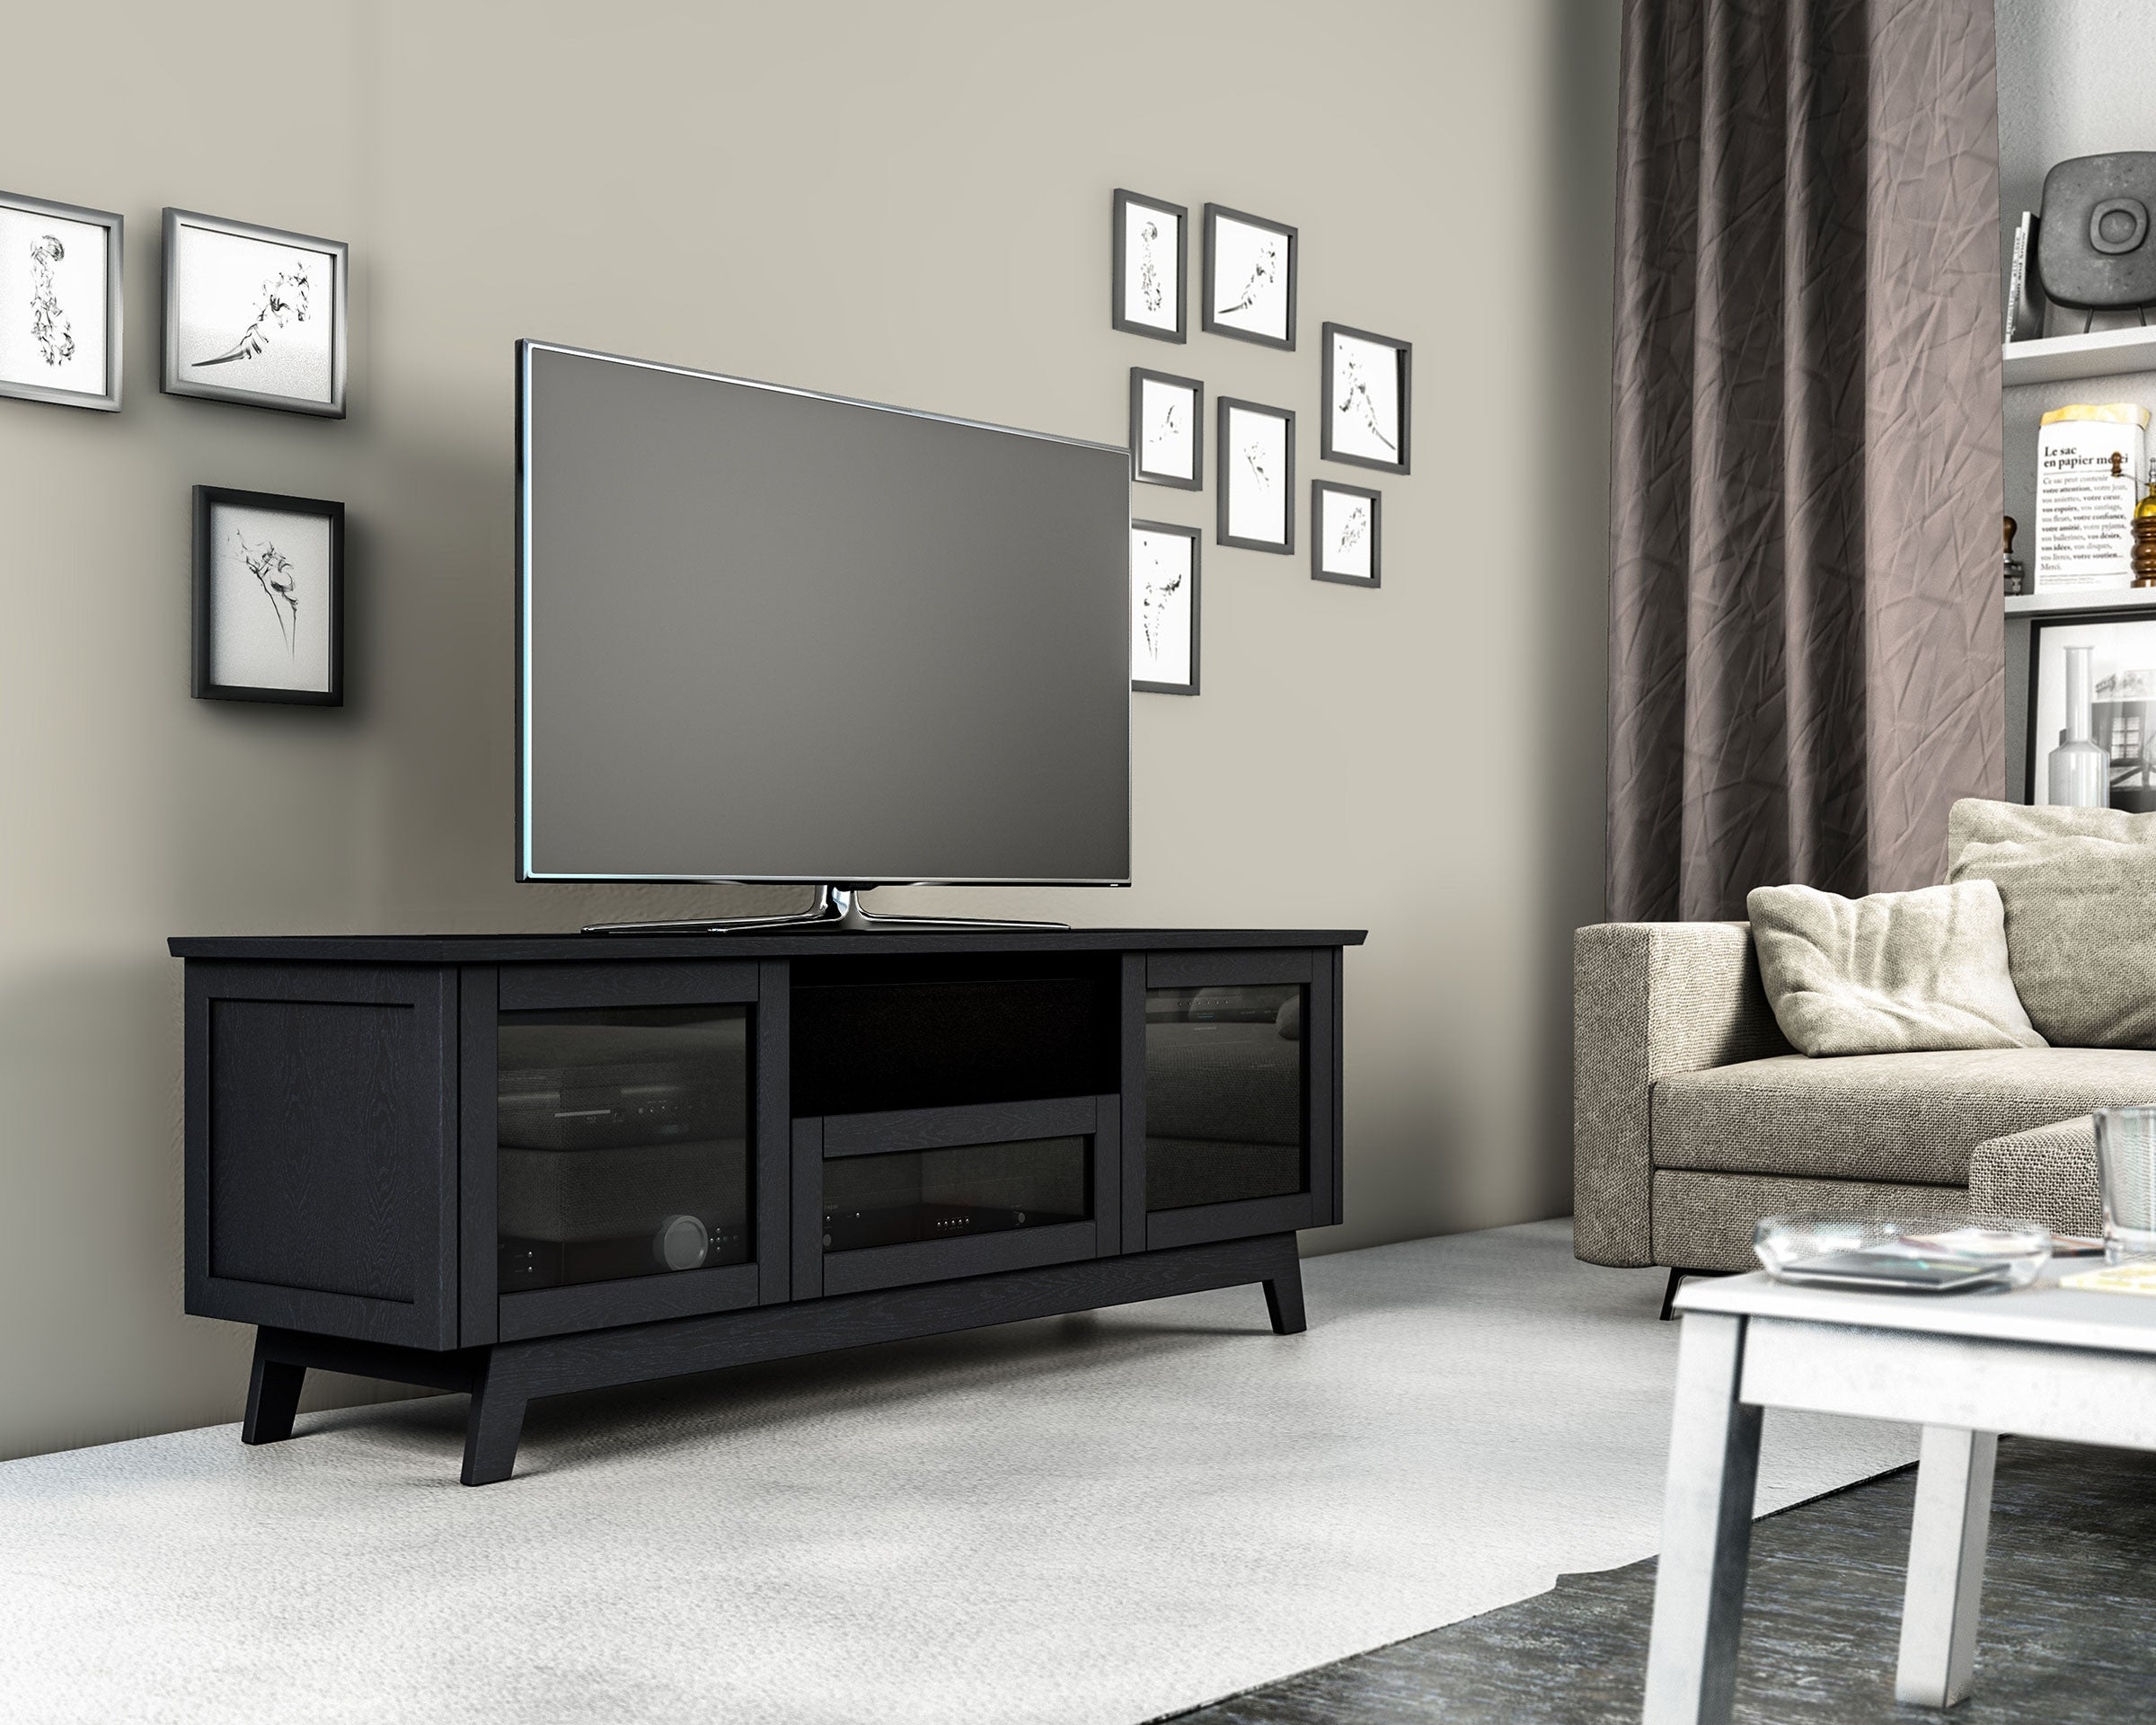 Sdav5 72 Tv Stand In Black Oak With Smoked Glass